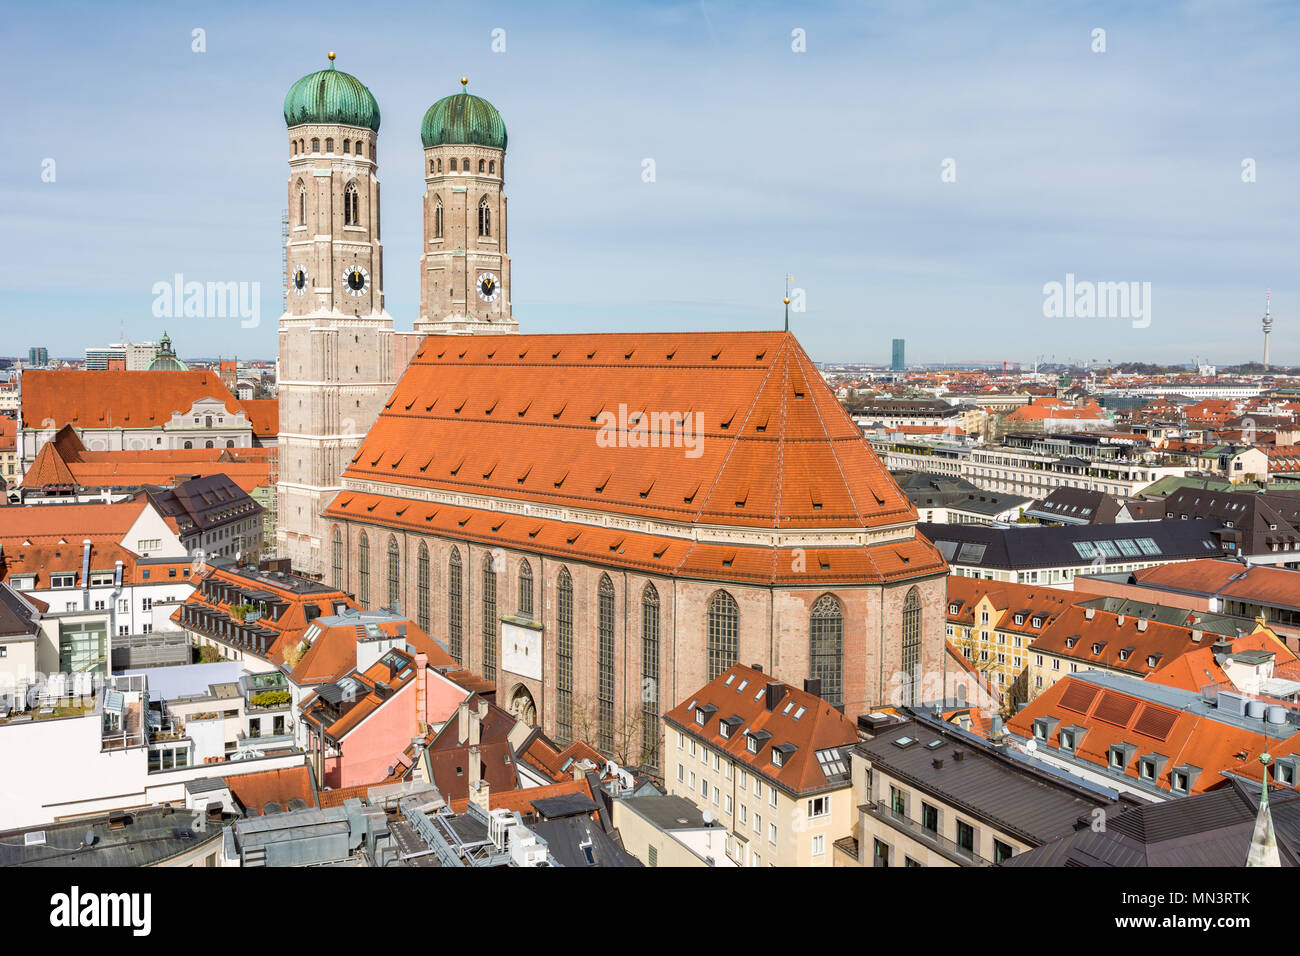 Aerial view over the city of Munich (Bavaria, Germany) - Stock Image